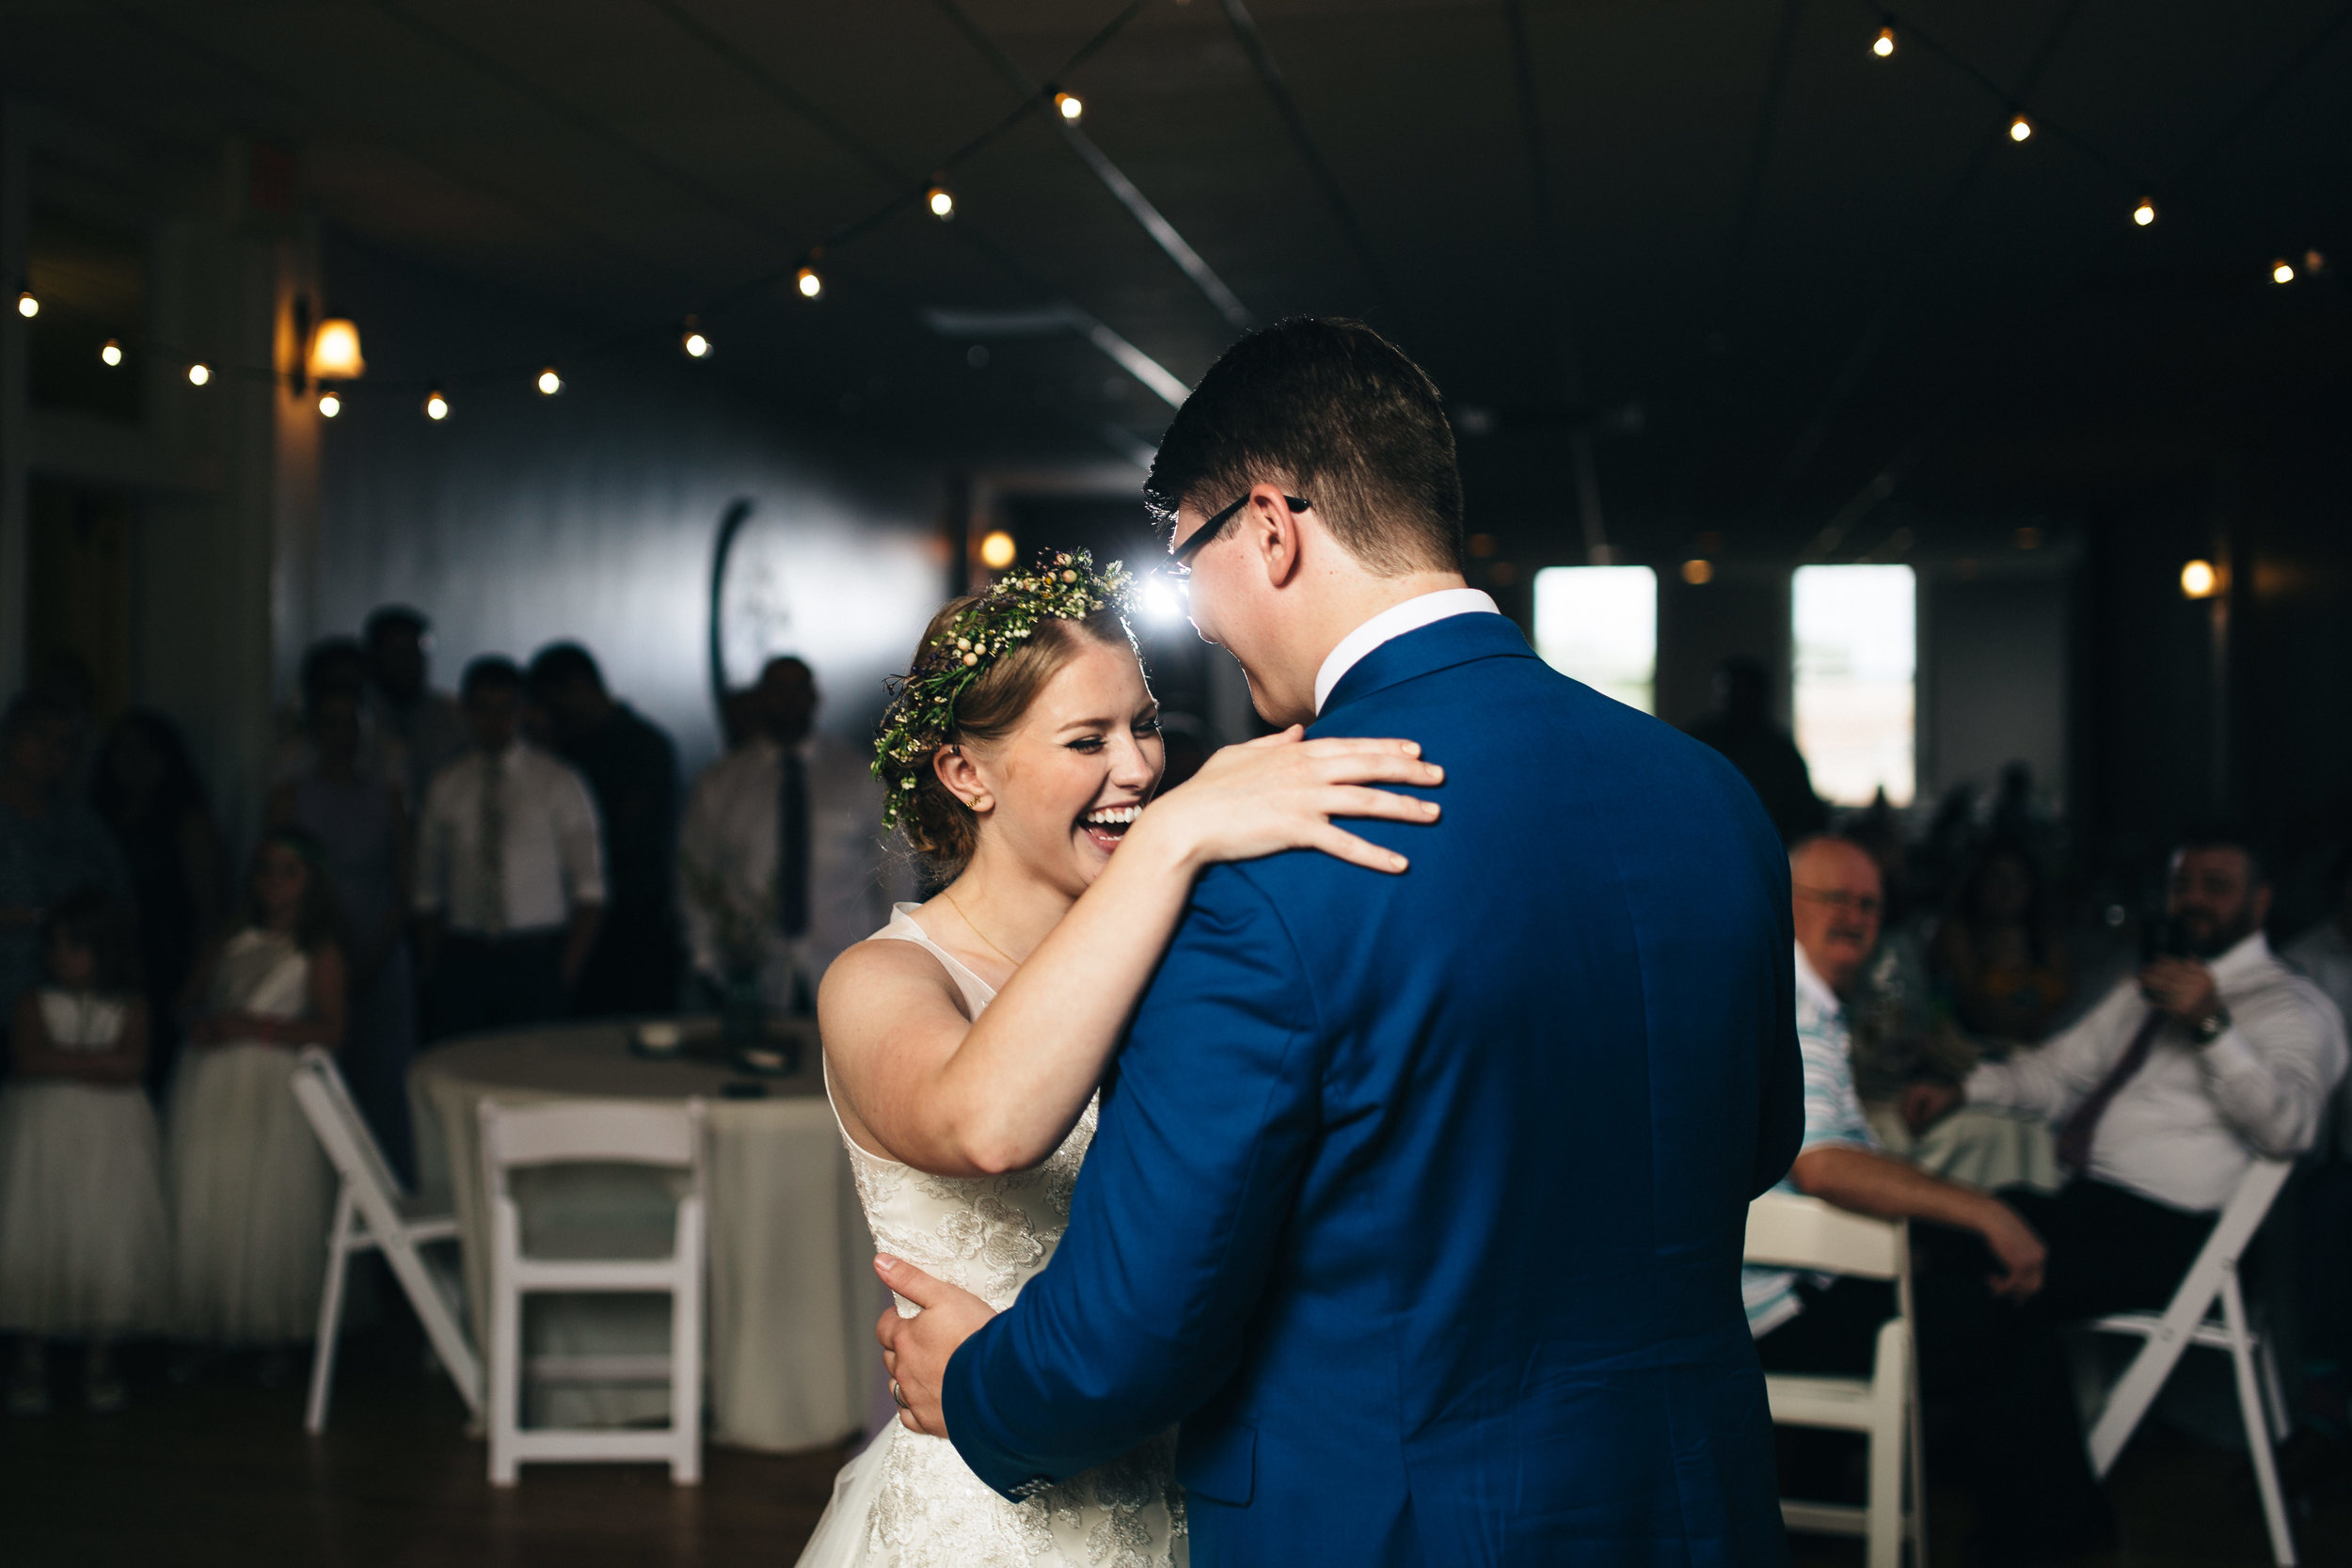 Bride and groom first dance at wedding reception.